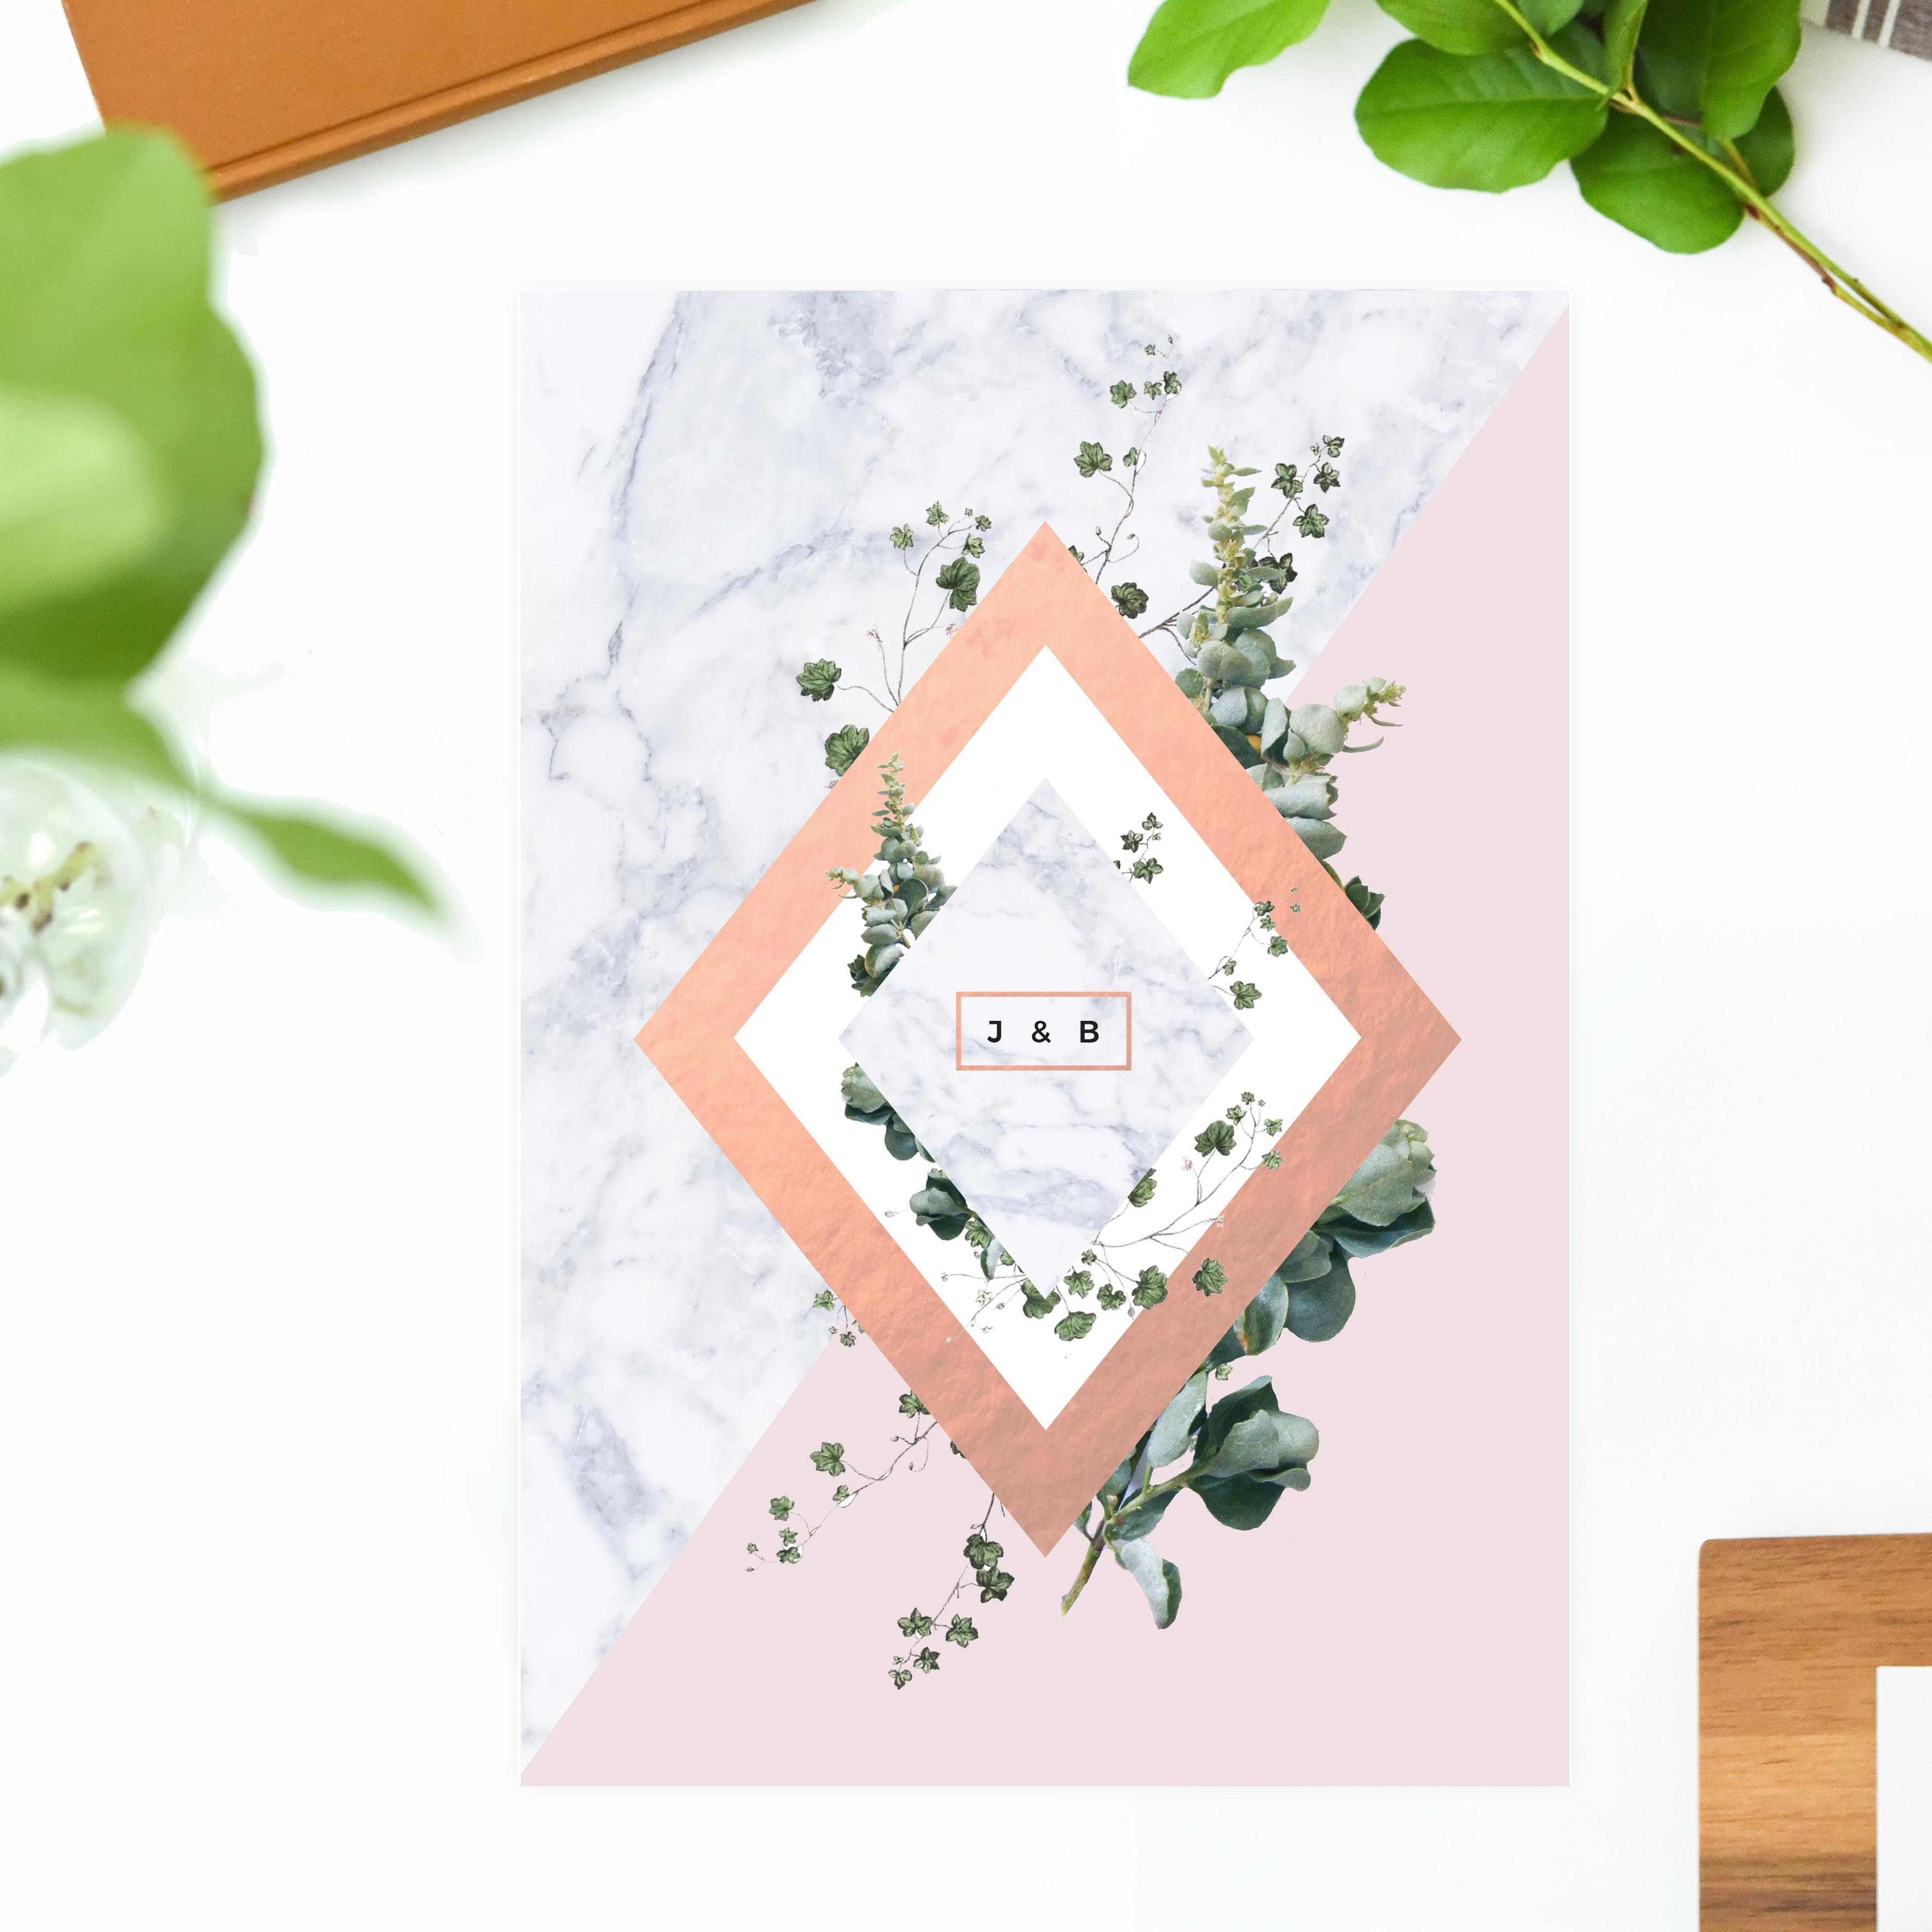 Modern Geometric Marble Rose Gold Wedding Invitations Contemporary Chic greenery foliage floral green garden weddign stationery australia sydney perth melbourne sail and swan